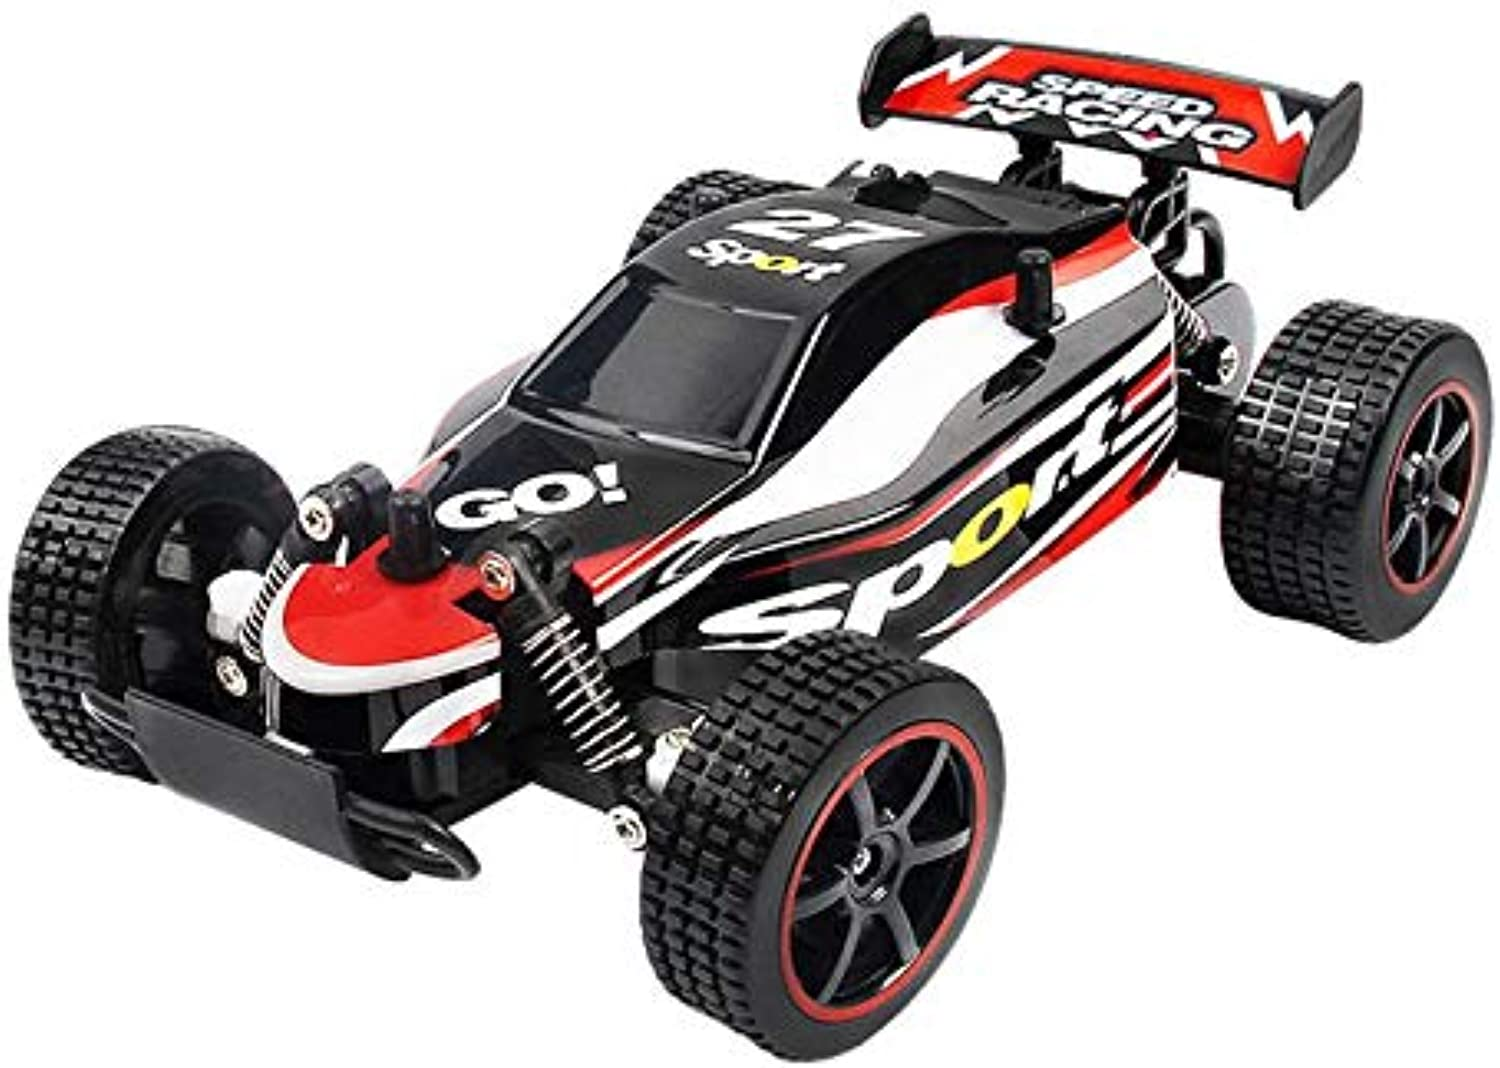 Generic 1 20 2.4GHz 48 KM h Remote Control Car High Speed RC Truck OffRoad Vehicle Gifts Red